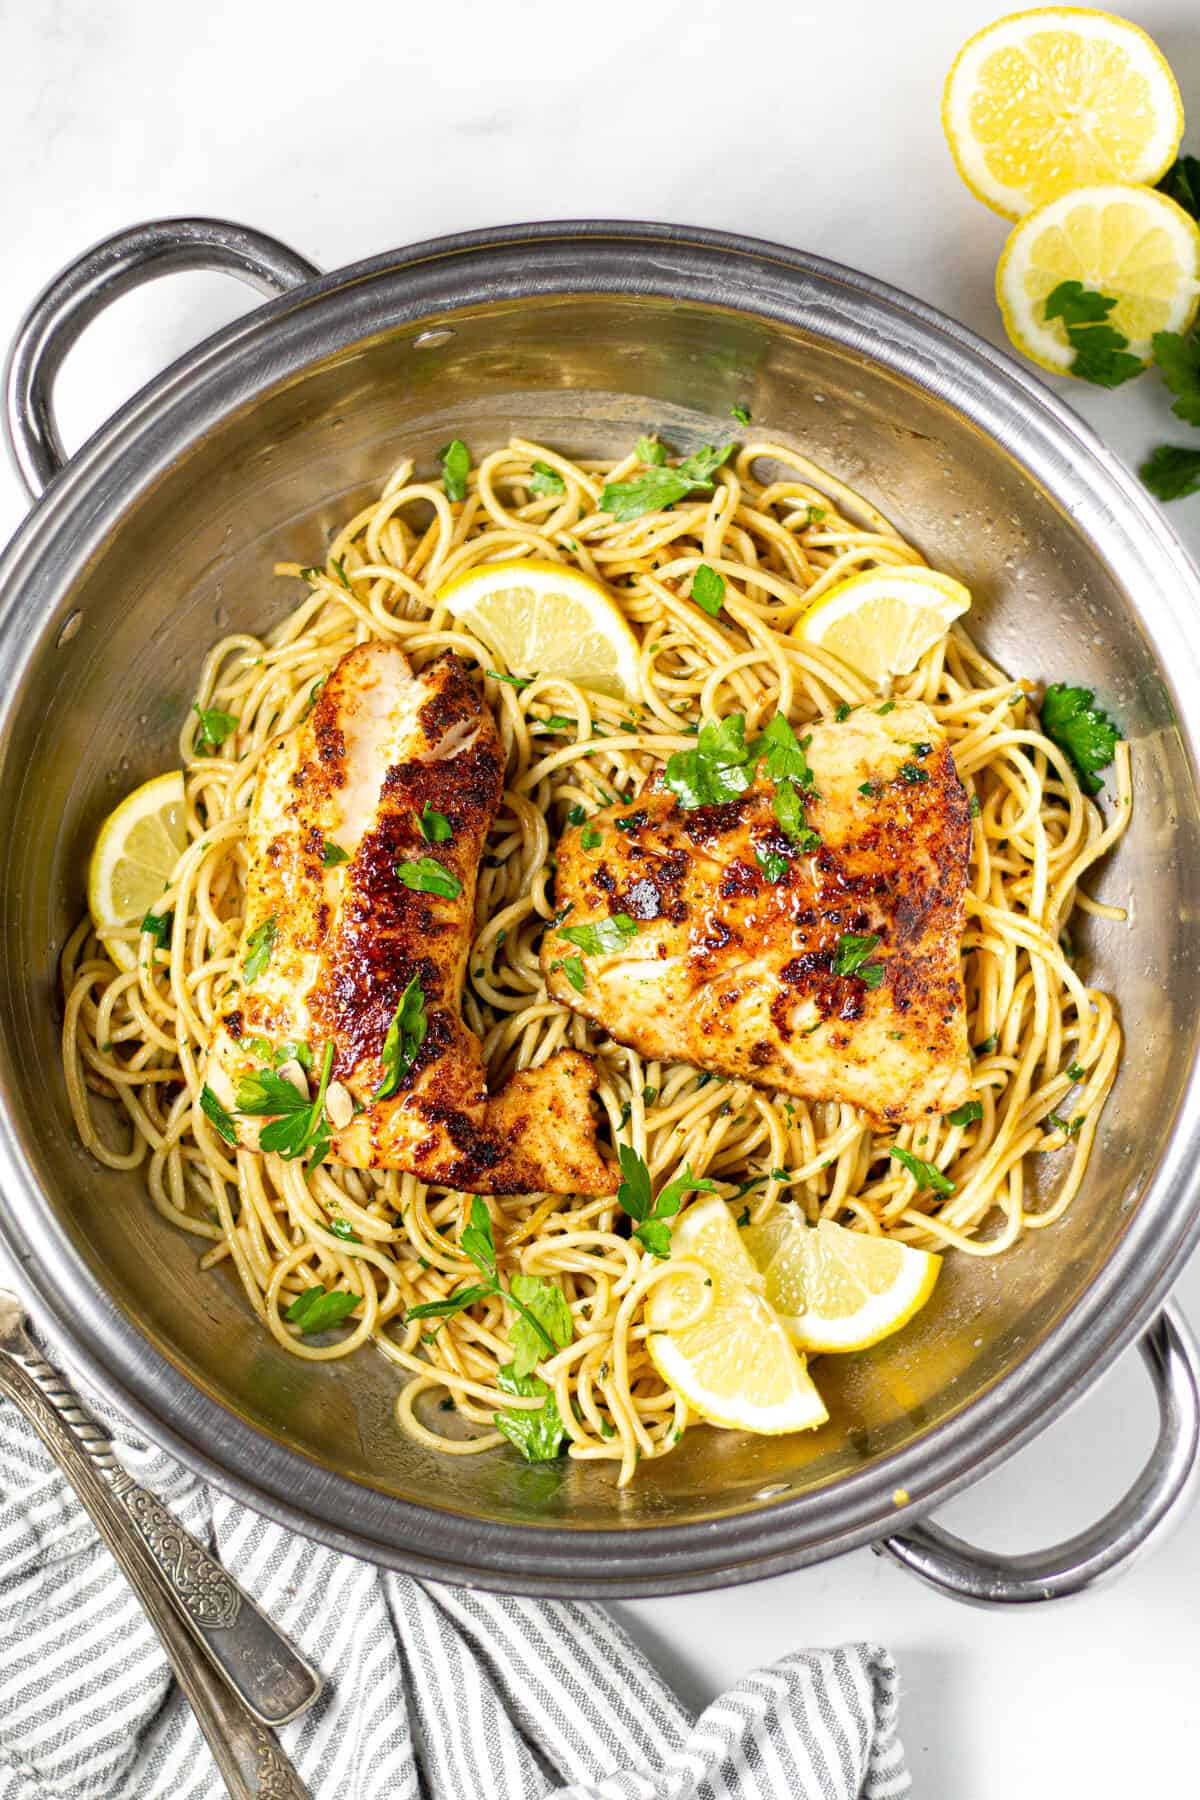 Pan-Seared with Lemony noodles